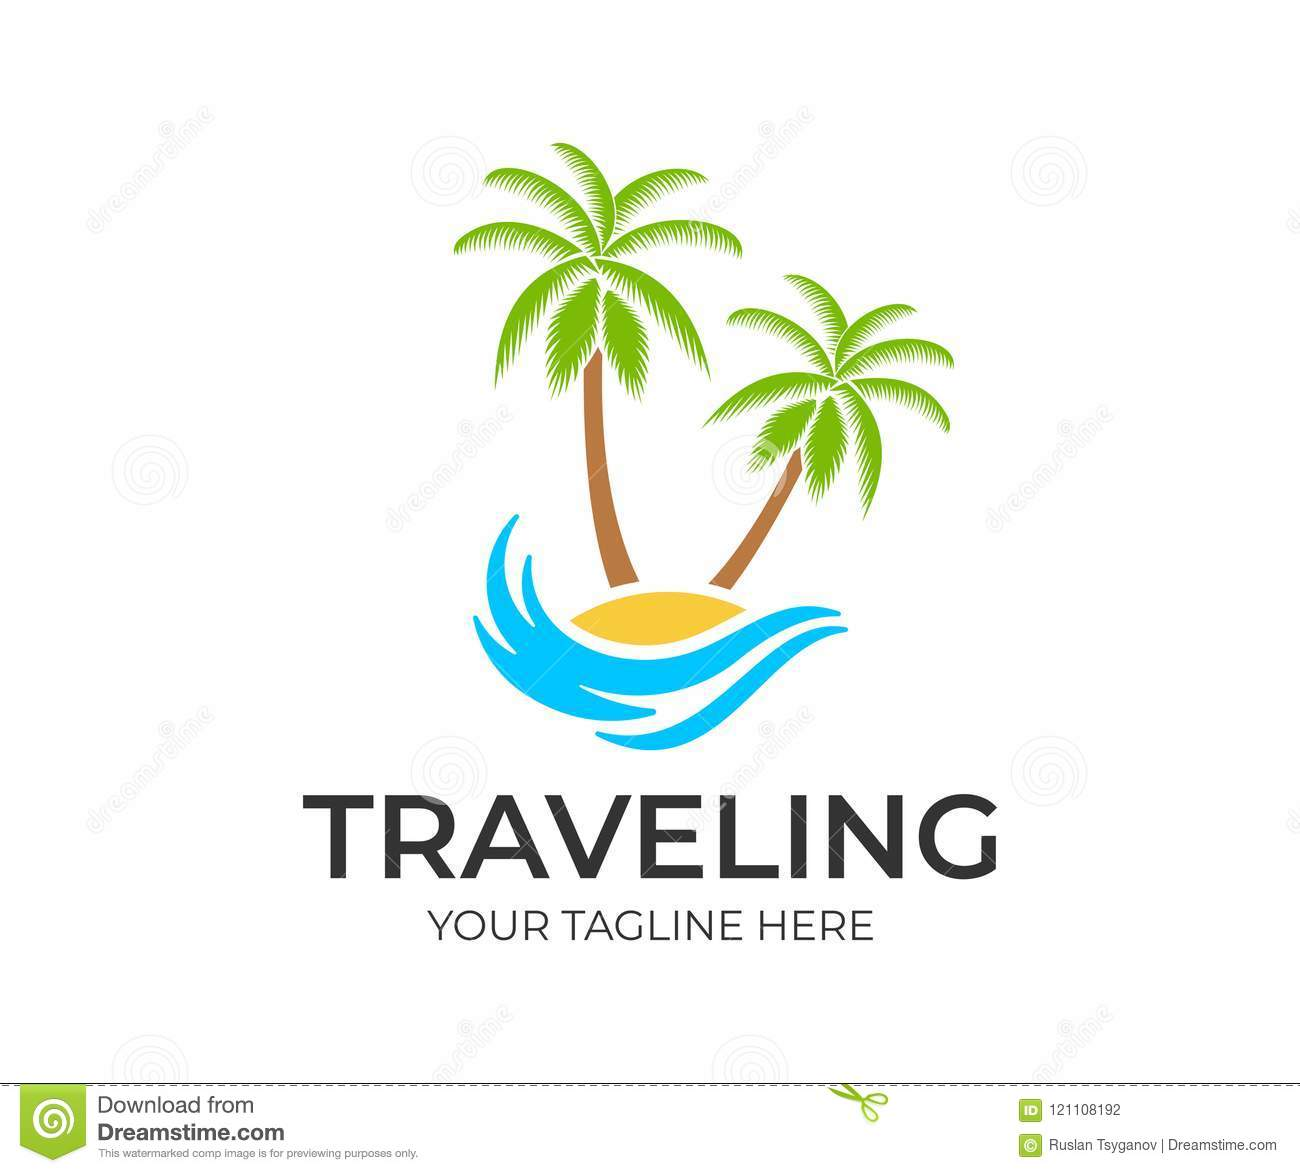 Traveling, travel, beach and palm trees on island with wave, logo template. Journey, recreation and vacation at resort and tropica